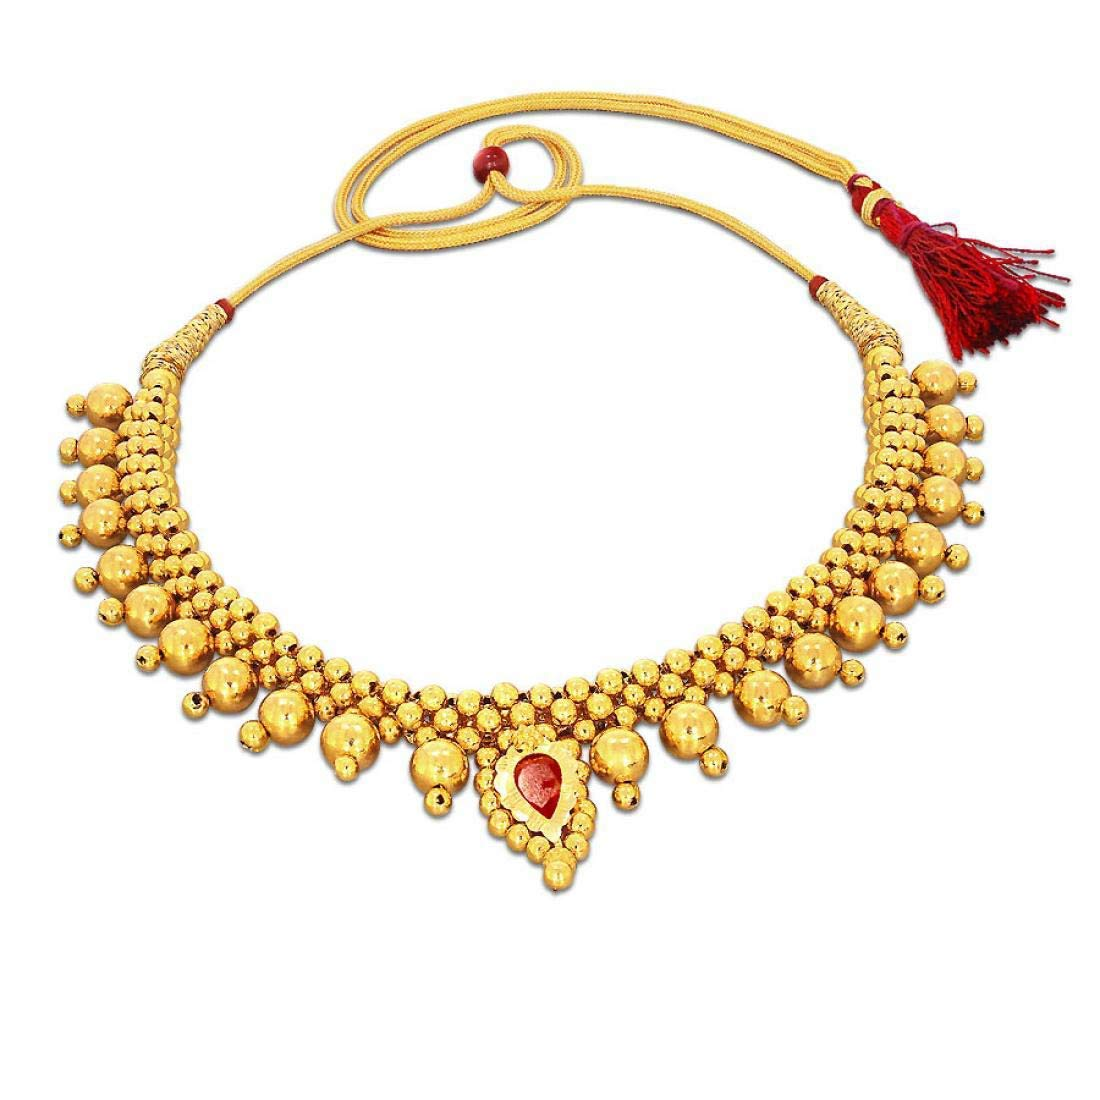 Candere By Kalyan Jewellers 22kt Yellow Gold Choker Necklace For Women Shop2day Online Shopping